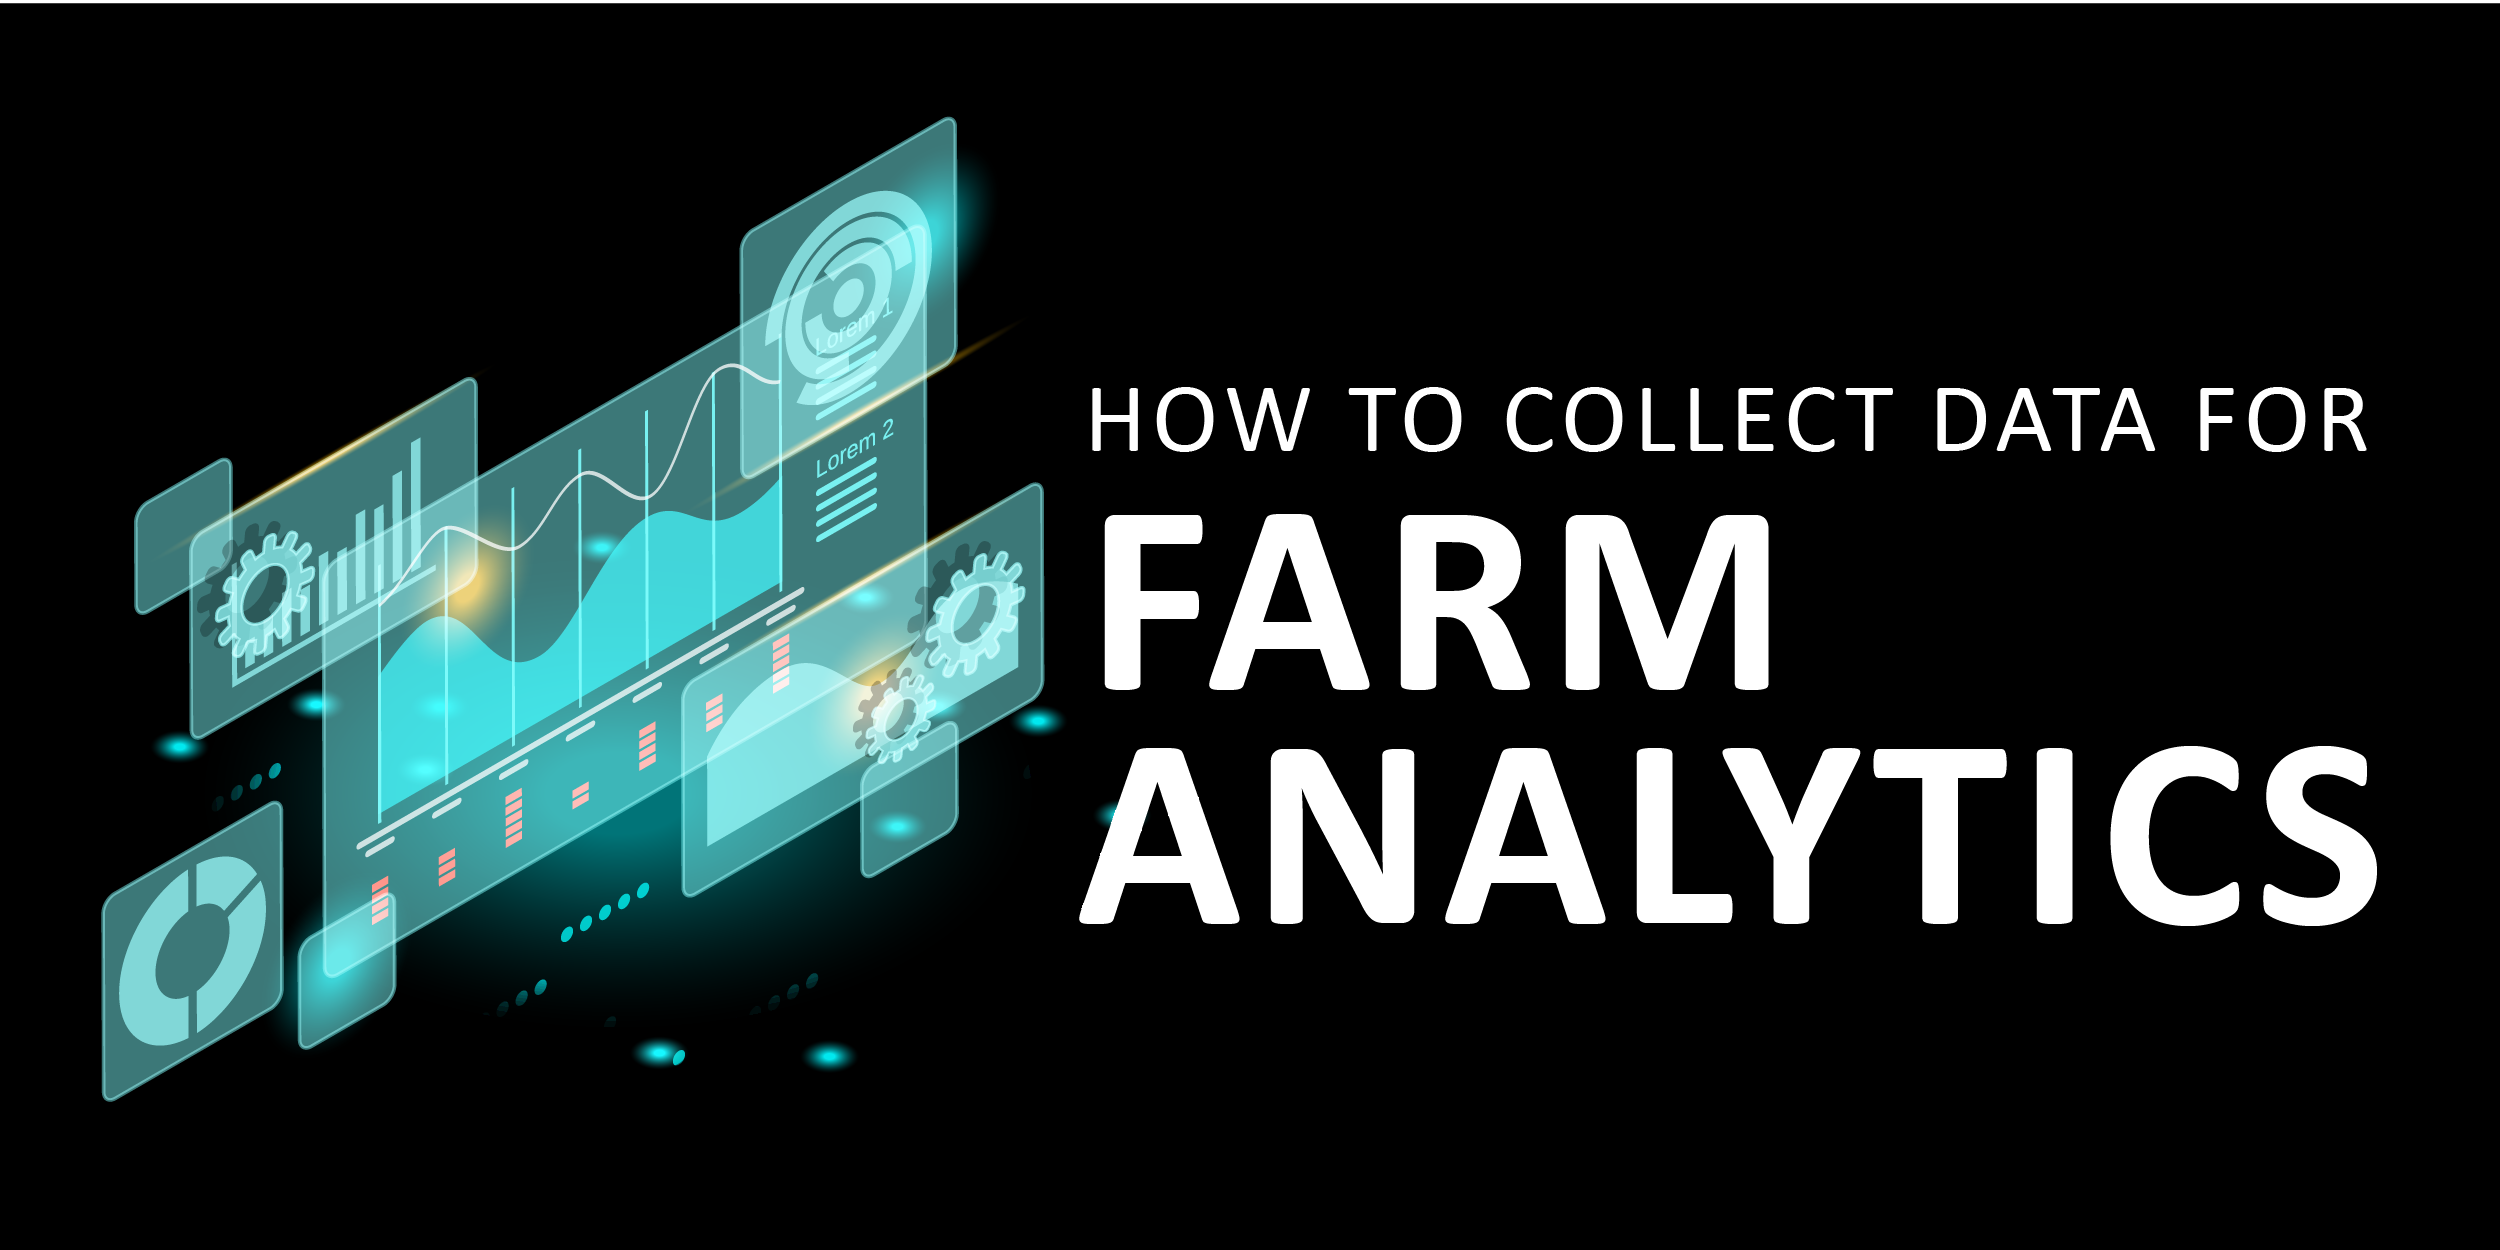 How to Collect Data for Farm Analytics